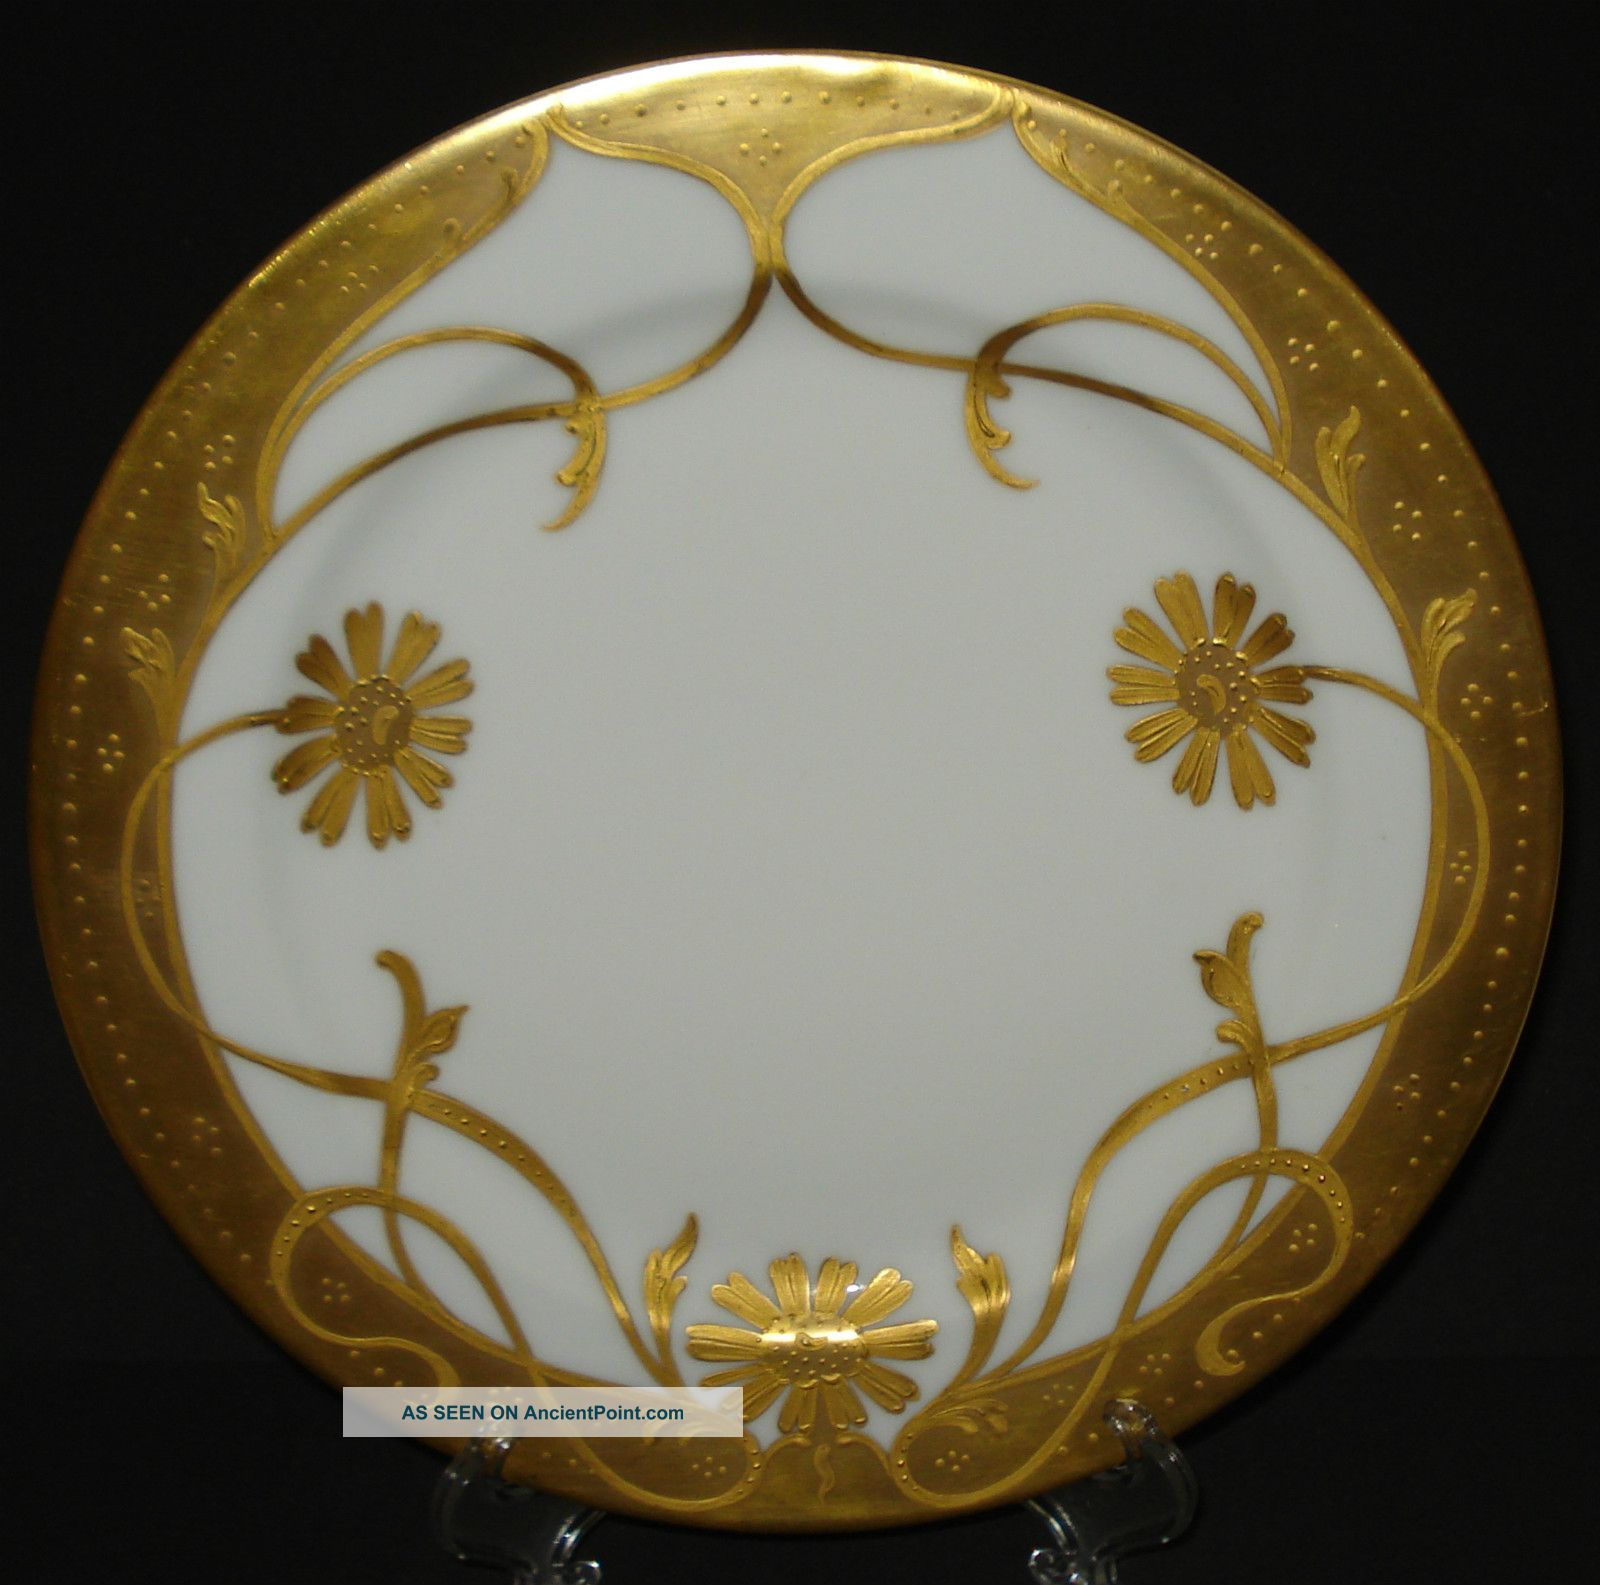 Antique Pickard China Plate Haviland Limoges Raised Gold Daisy Hand Painted 1903 Art Nouveau photo